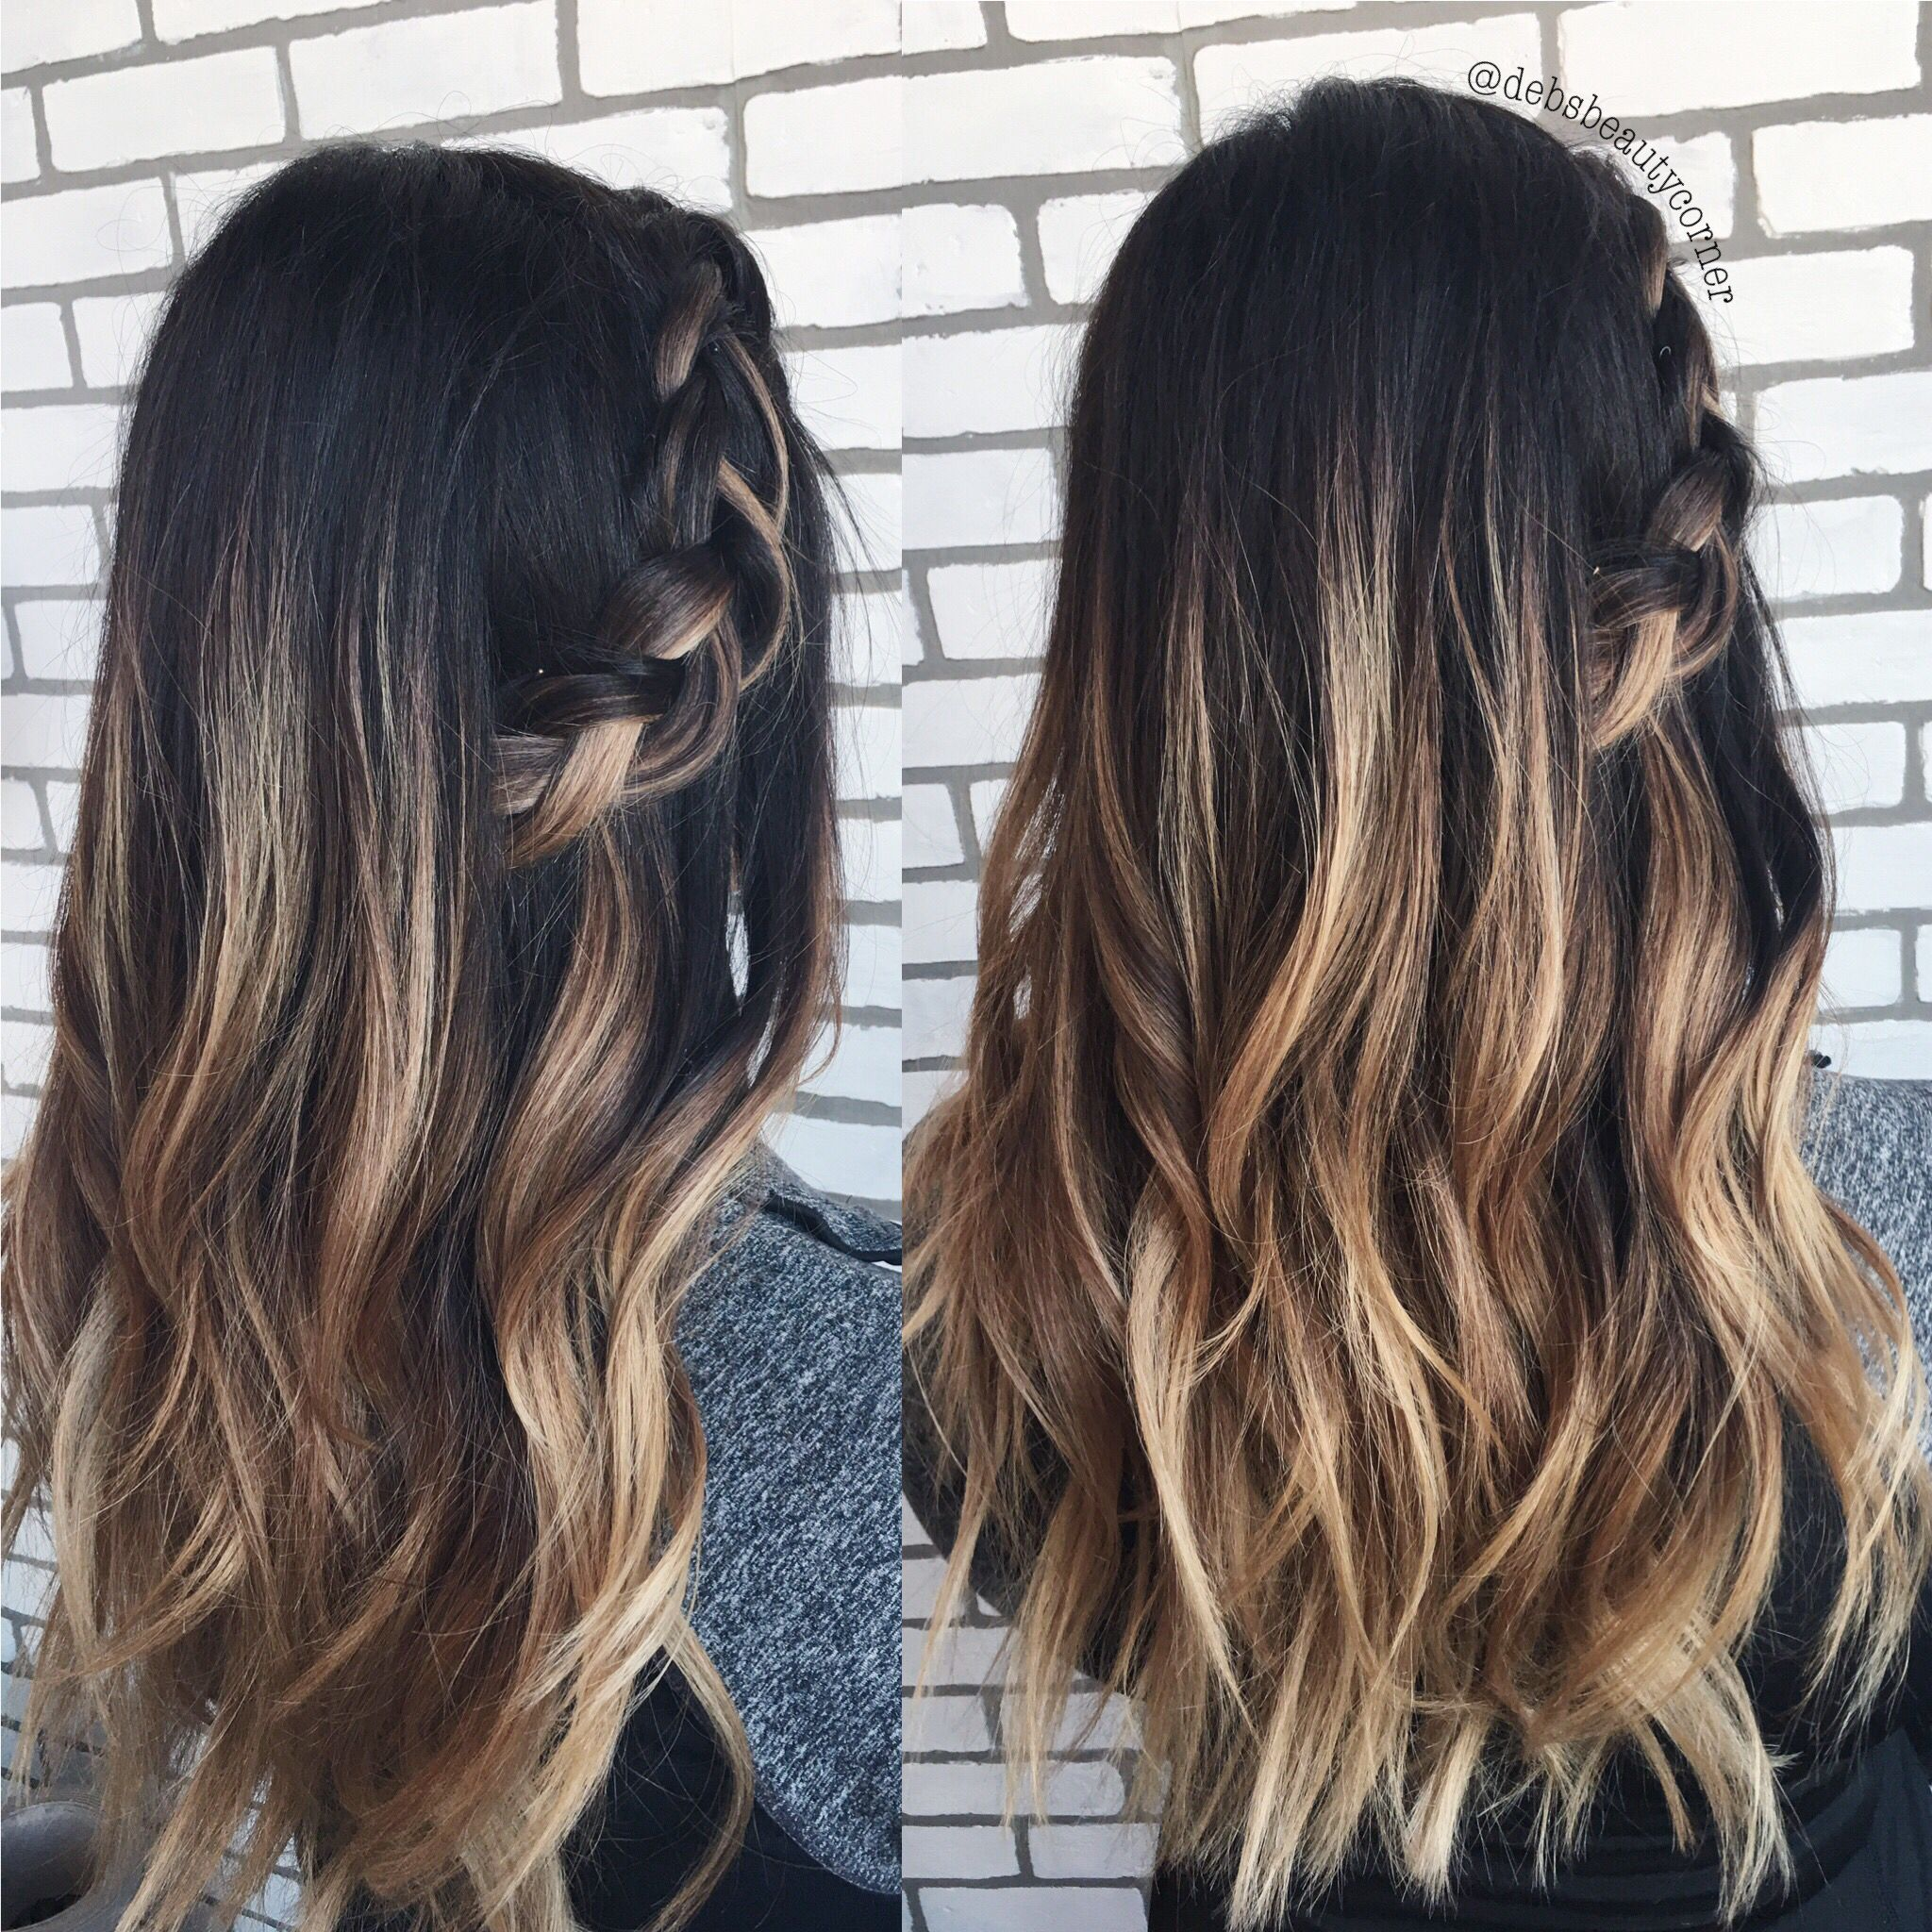 High Contrast Balayage Dark Brown Hair With Caramel By Debsbeautycorner Blond Pinterest